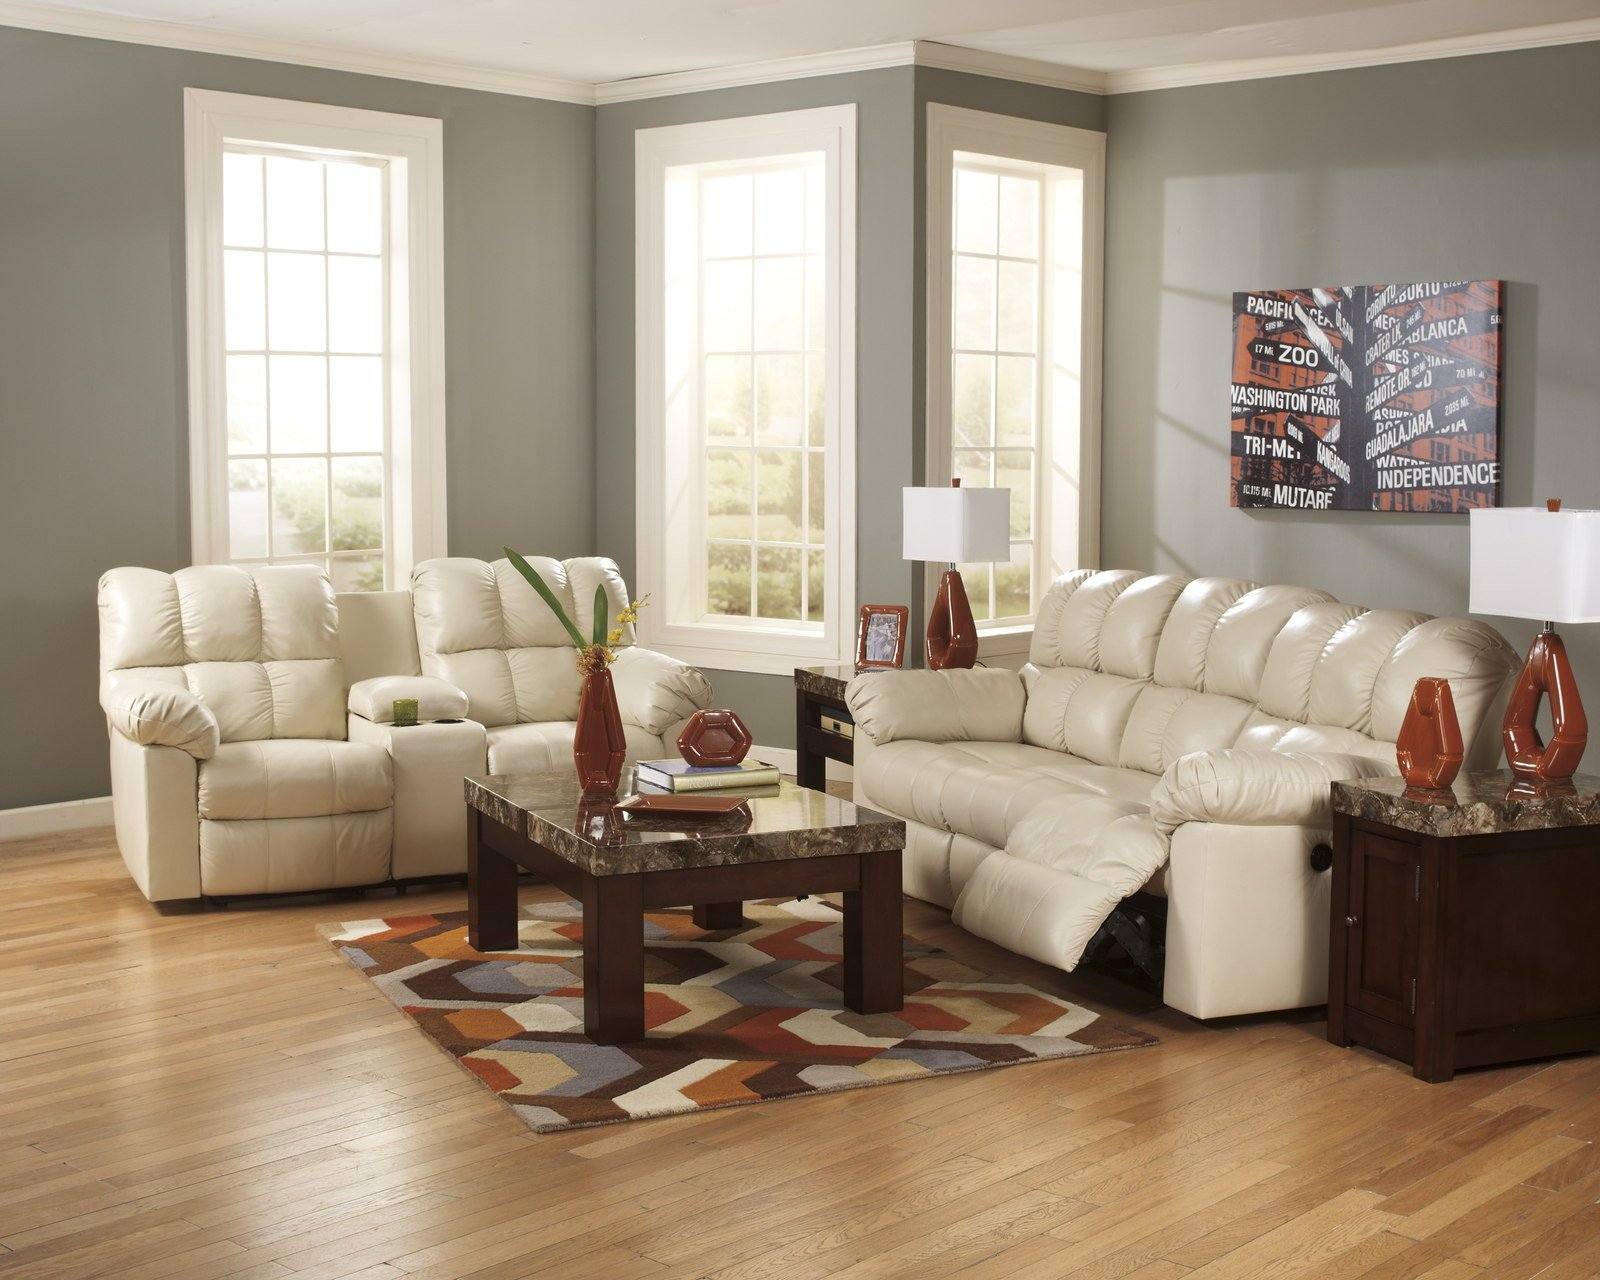 Most Comfortable Living Roomfurniture Most fortable Living Room Chair Zion Star